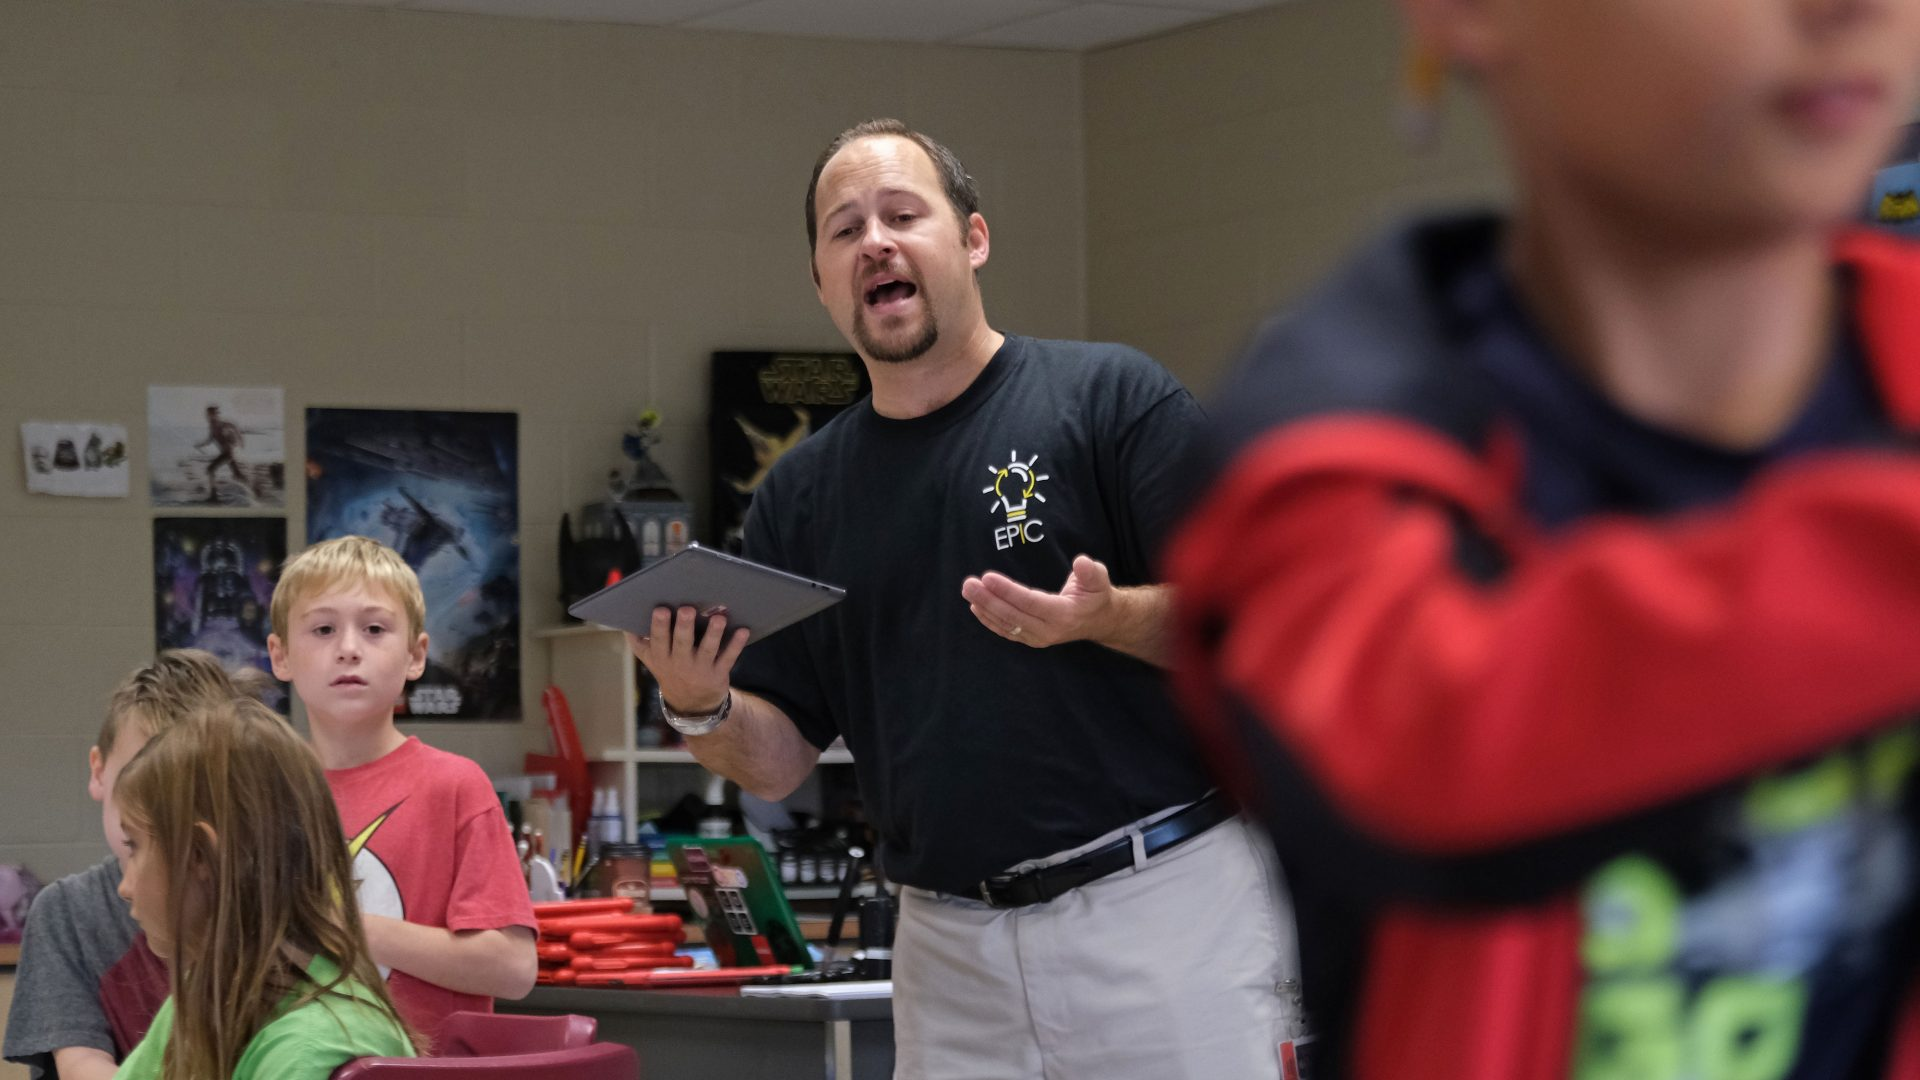 Discovery teacher Matt Derr instructs students as they work with a tornado simulation augmented reality program on smartphones Sept. 26, 2019, at Whitfield Elementary School in Spring Township, Berks County.